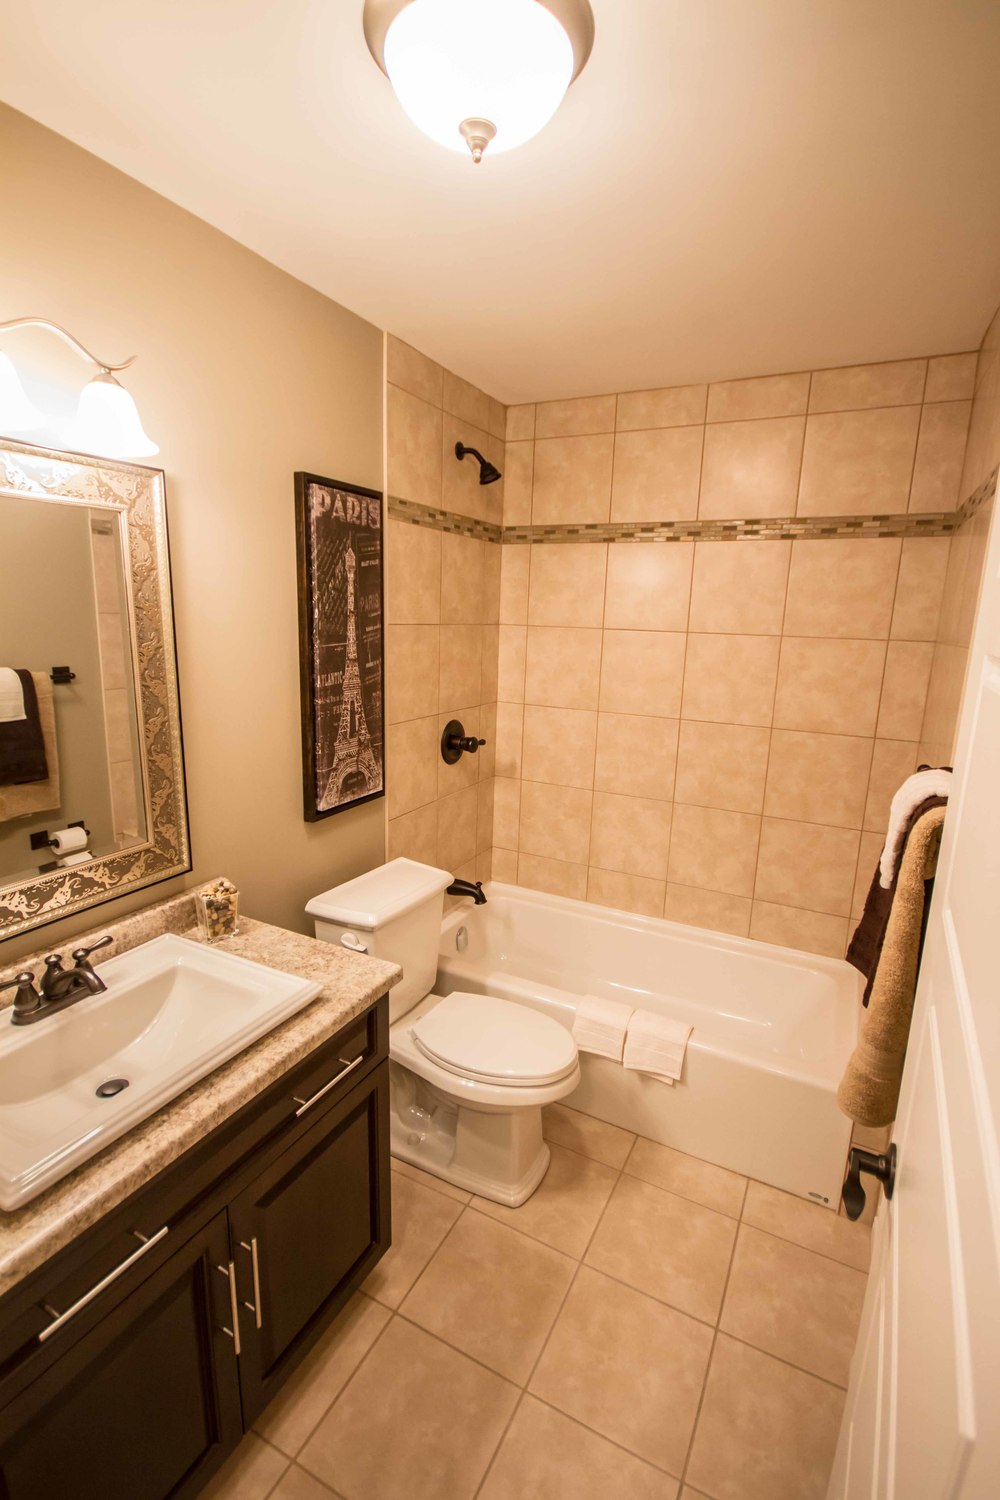 Kestrel Suites - Bathroom.jpg